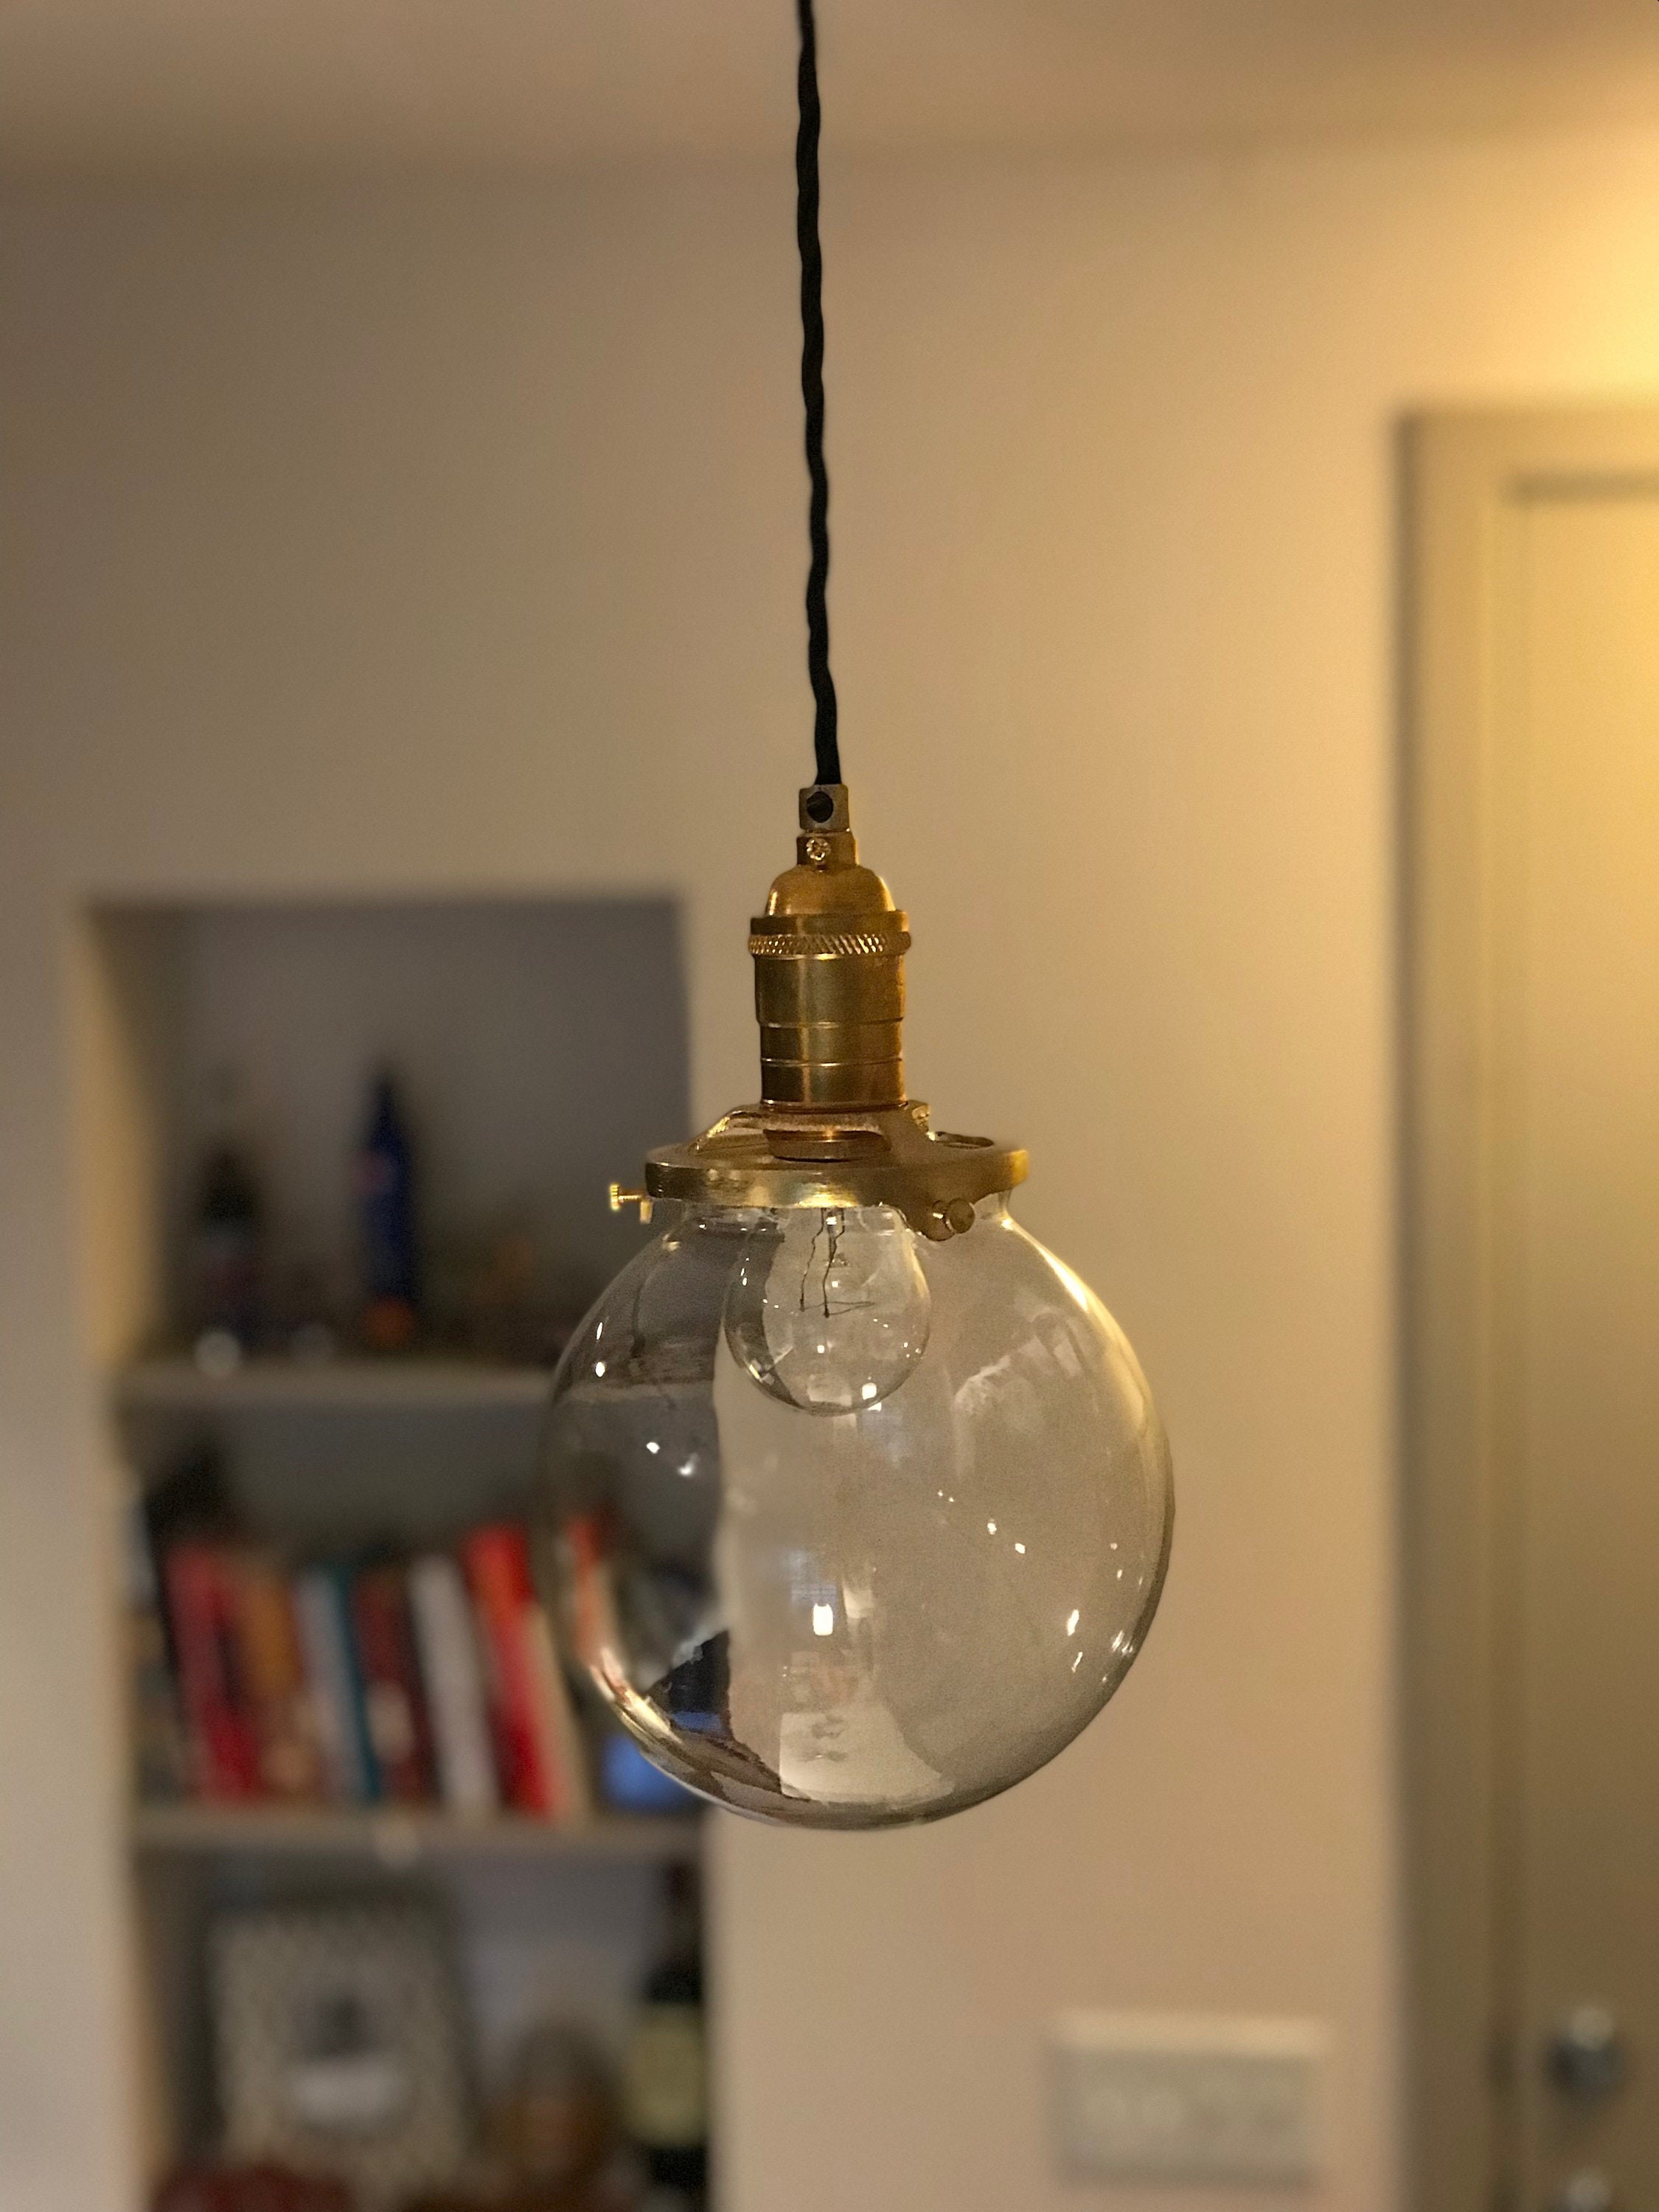 Modern pendant light gold brass 6 clear glass globe hanging modern pendant light gold brass 6 clear glass globe hanging light fixtures pendant lamps arubaitofo Images